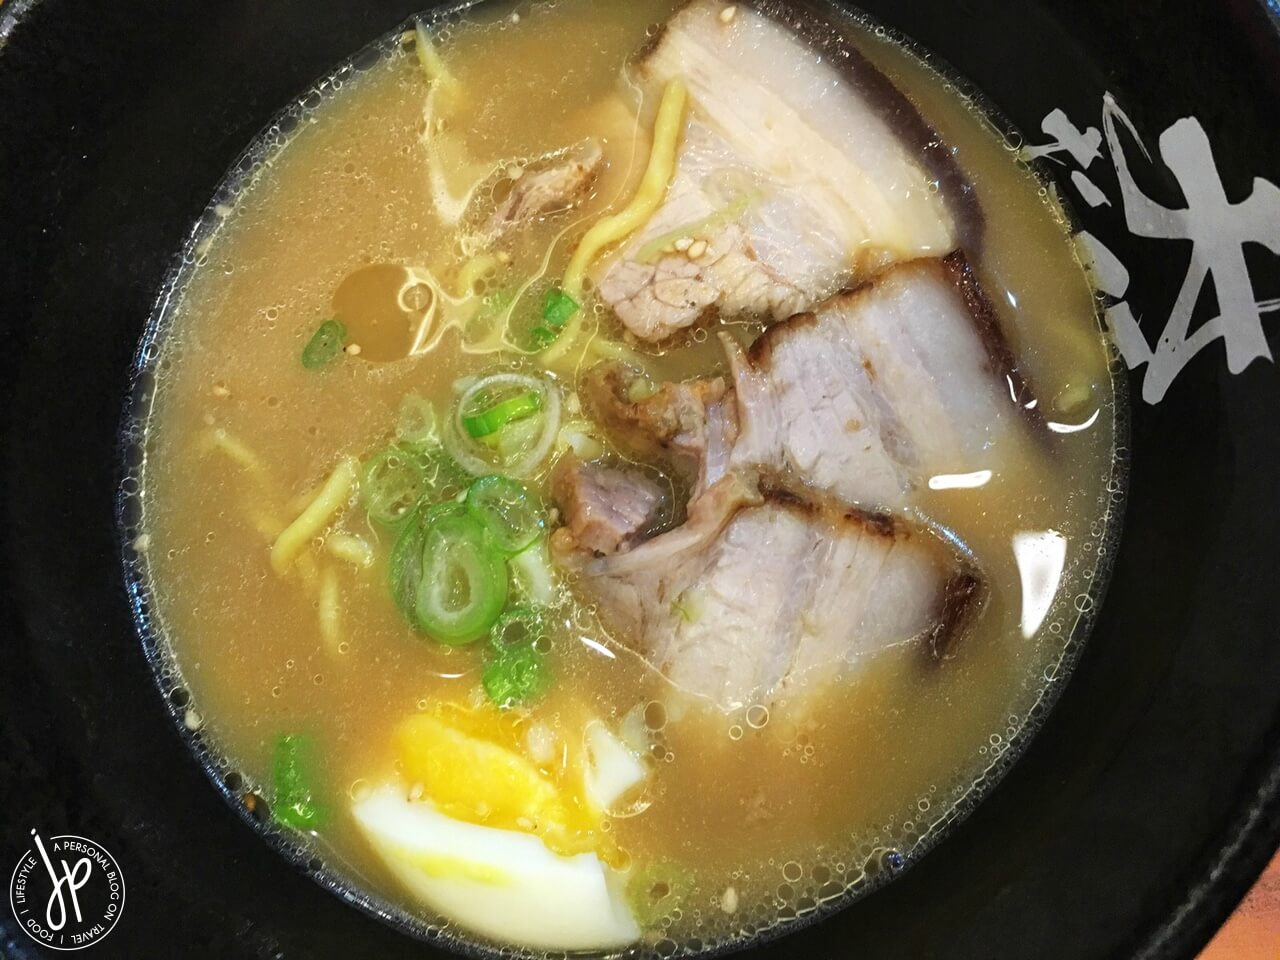 salted pork ramen three pieces of pork slices and half egg